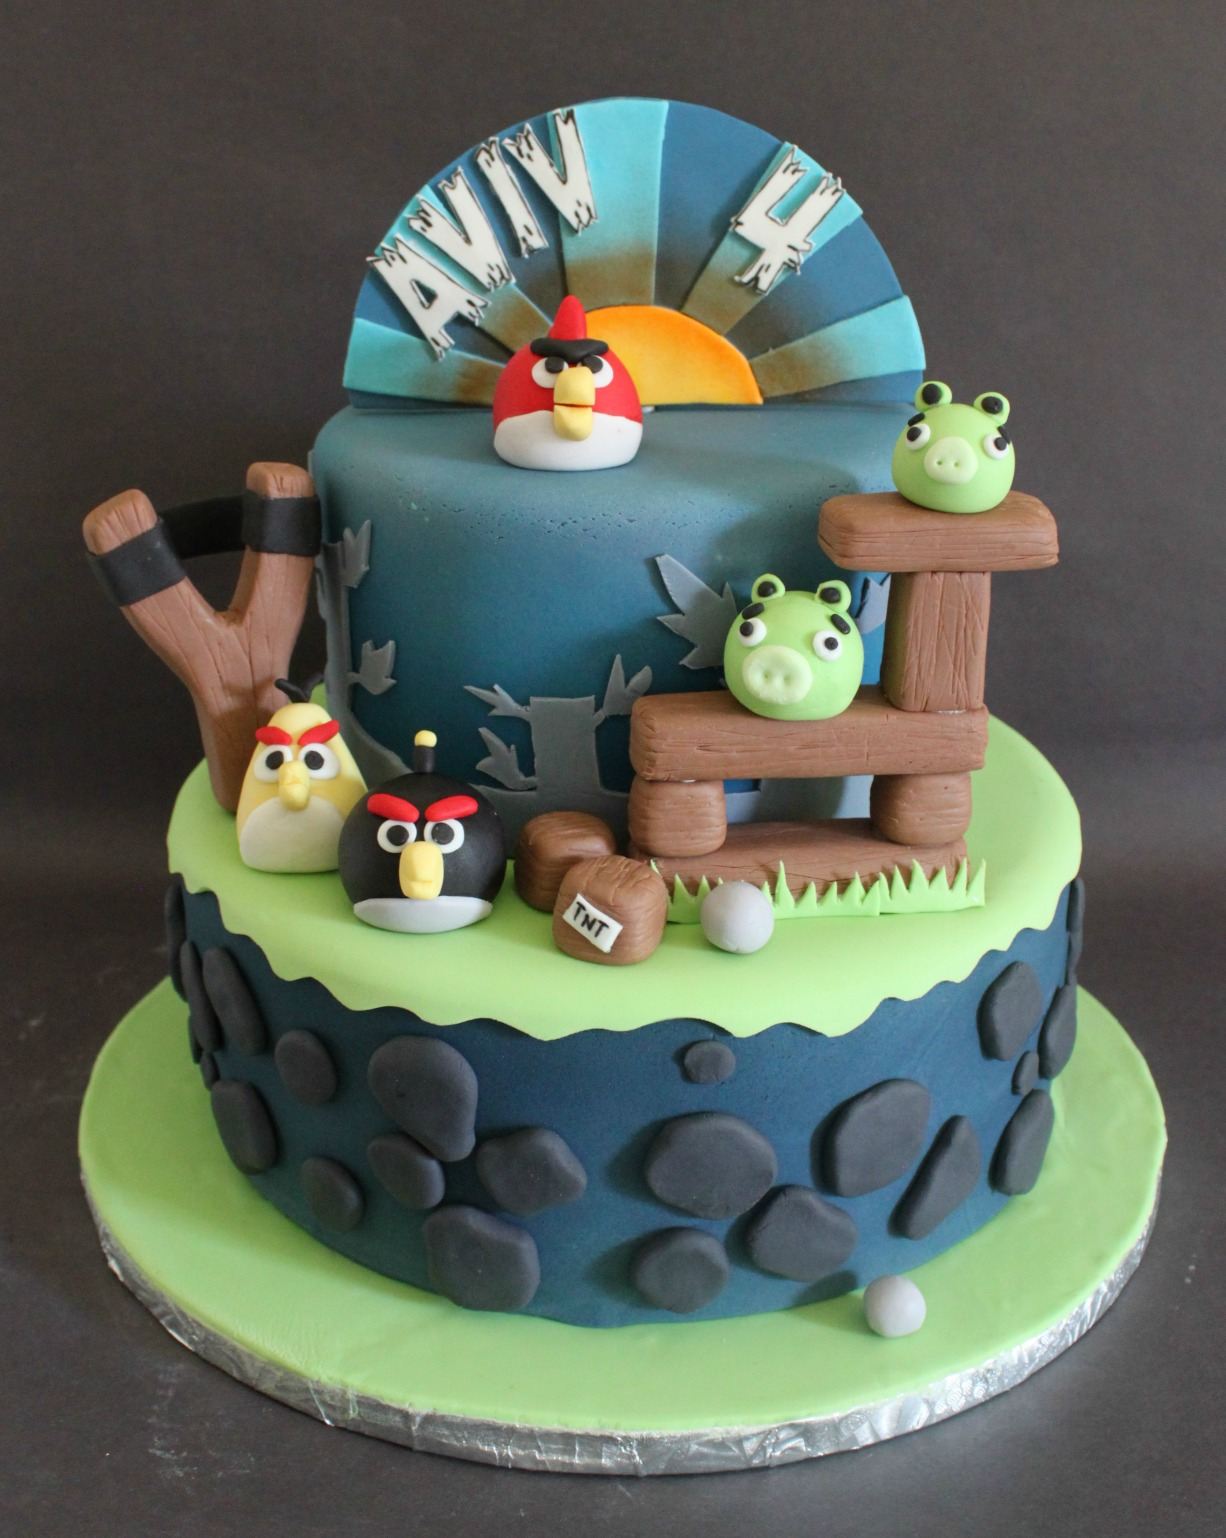 Awe Inspiring Angry Birds Birthday Cake Lil Miss Cakes Funny Birthday Cards Online Overcheapnameinfo